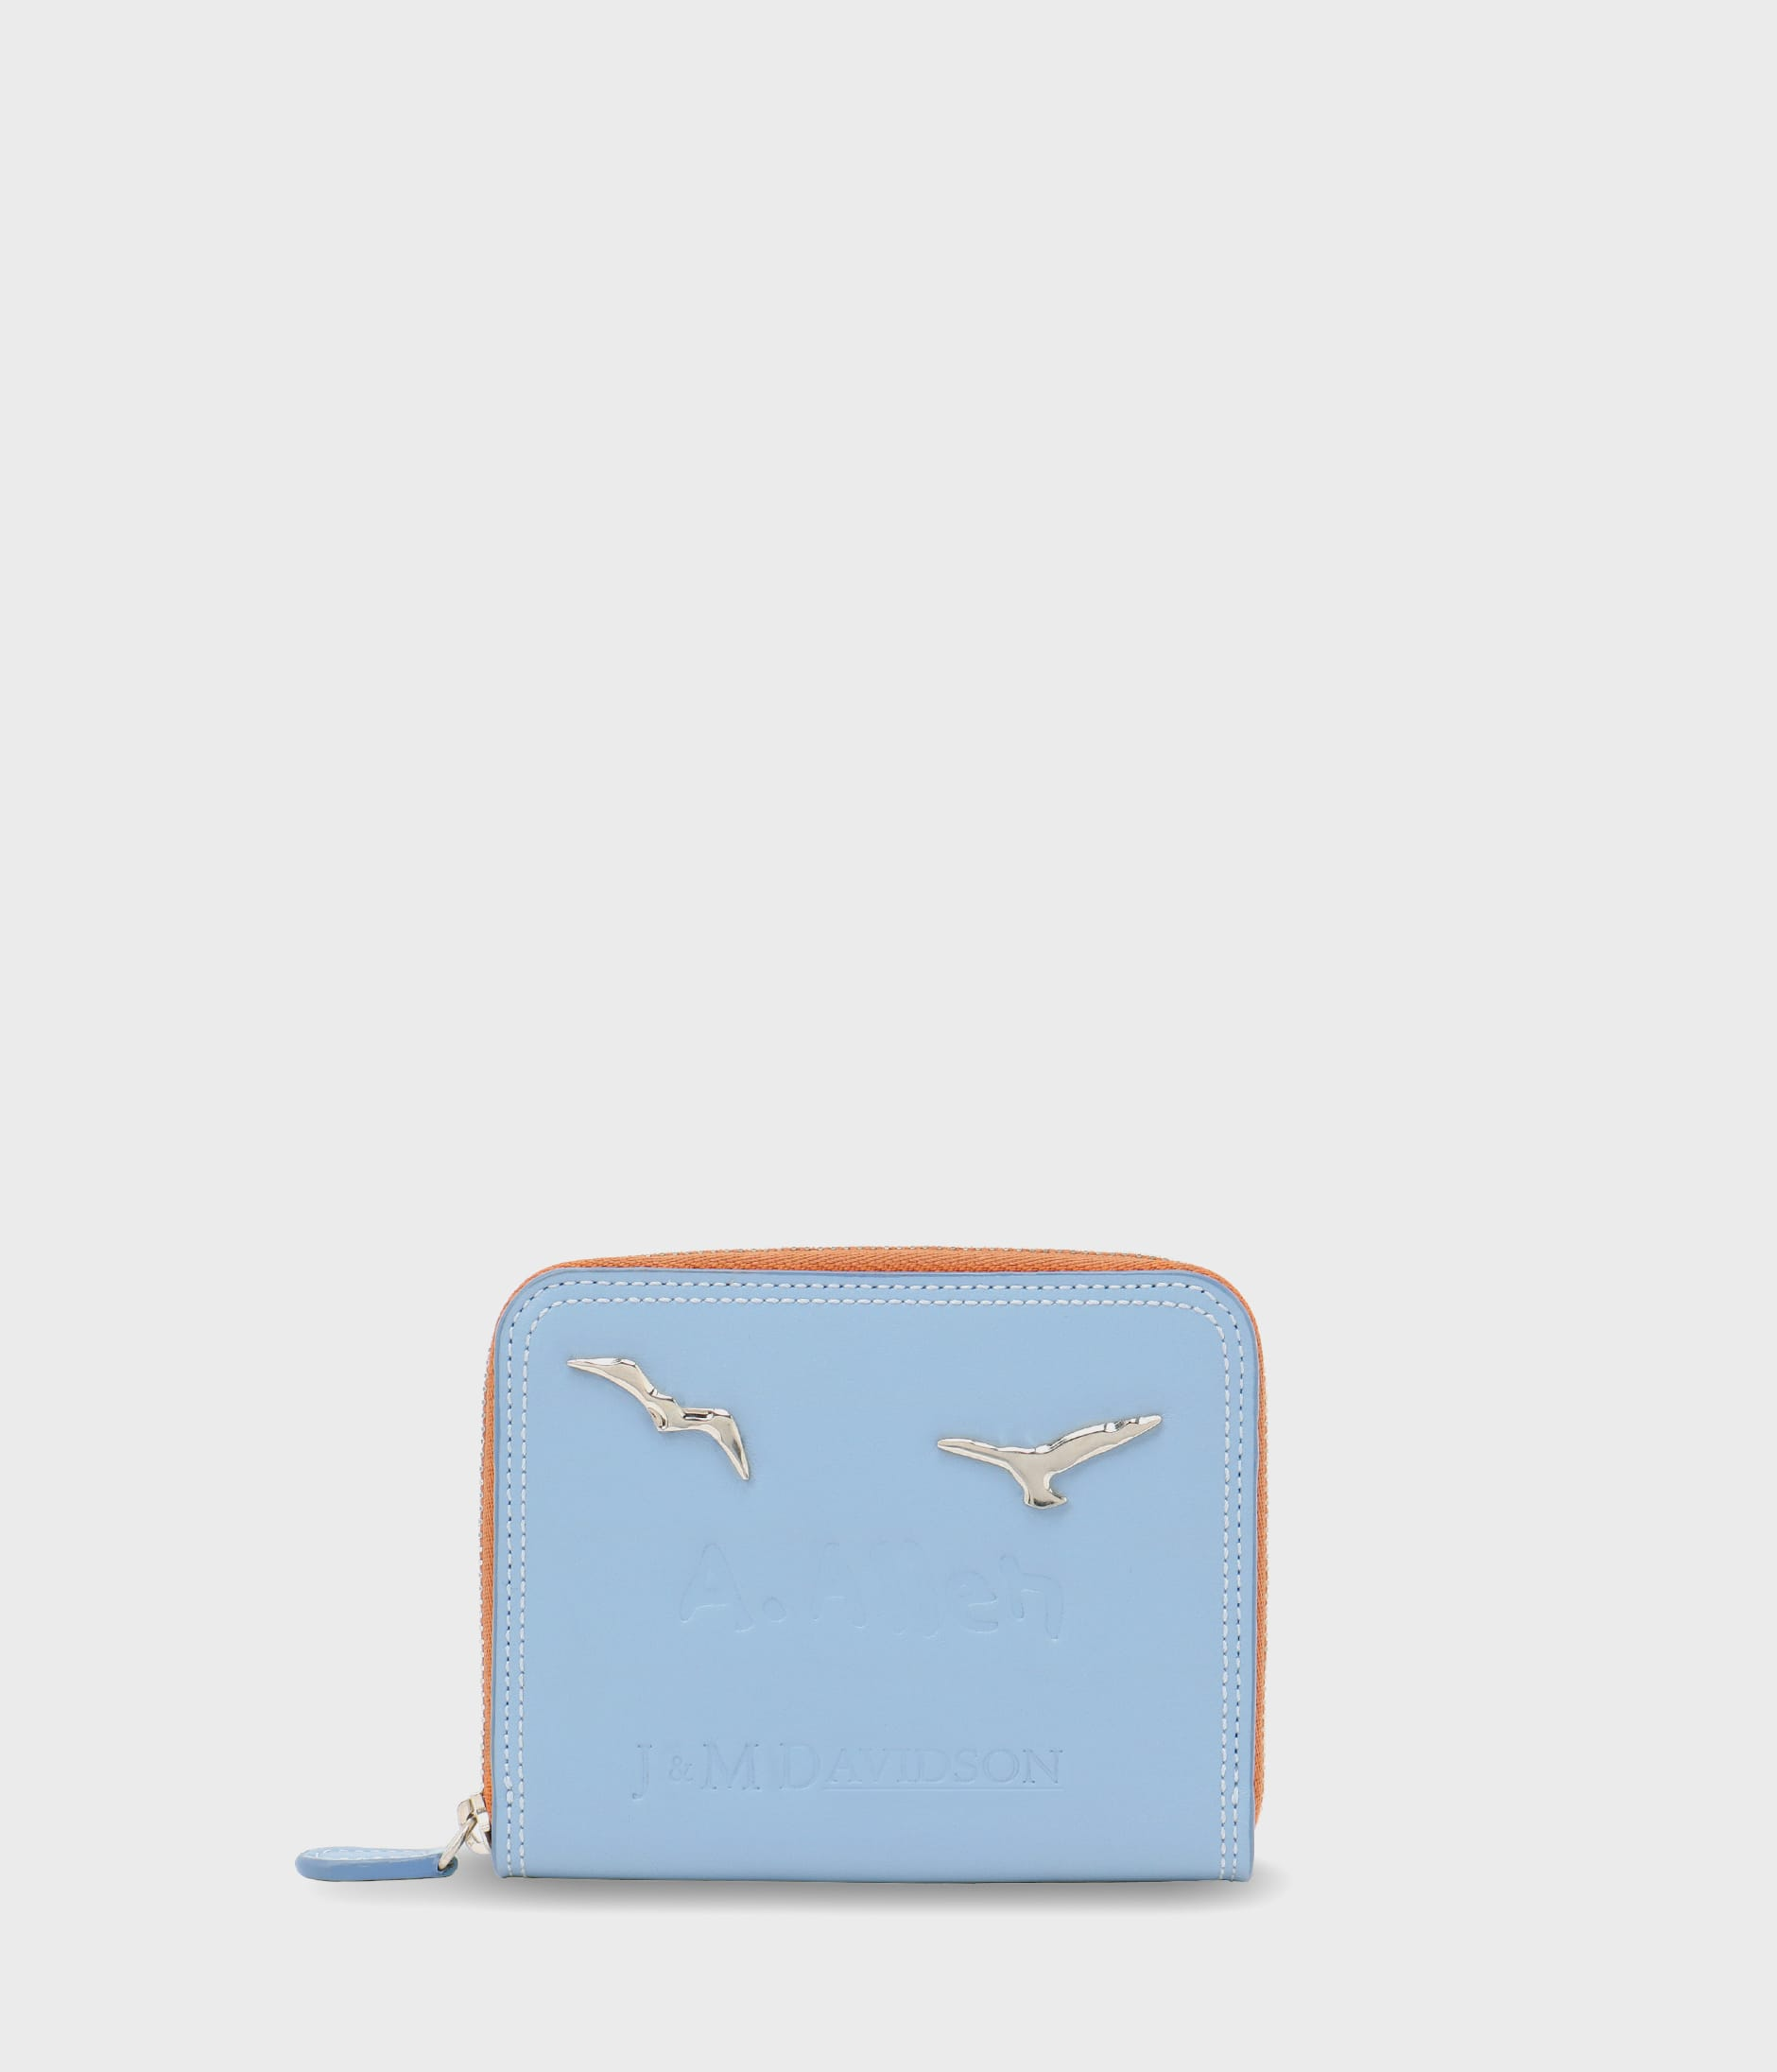 SMALL ZIP AROUND PURSE 詳細画像 SKY BLUE 1